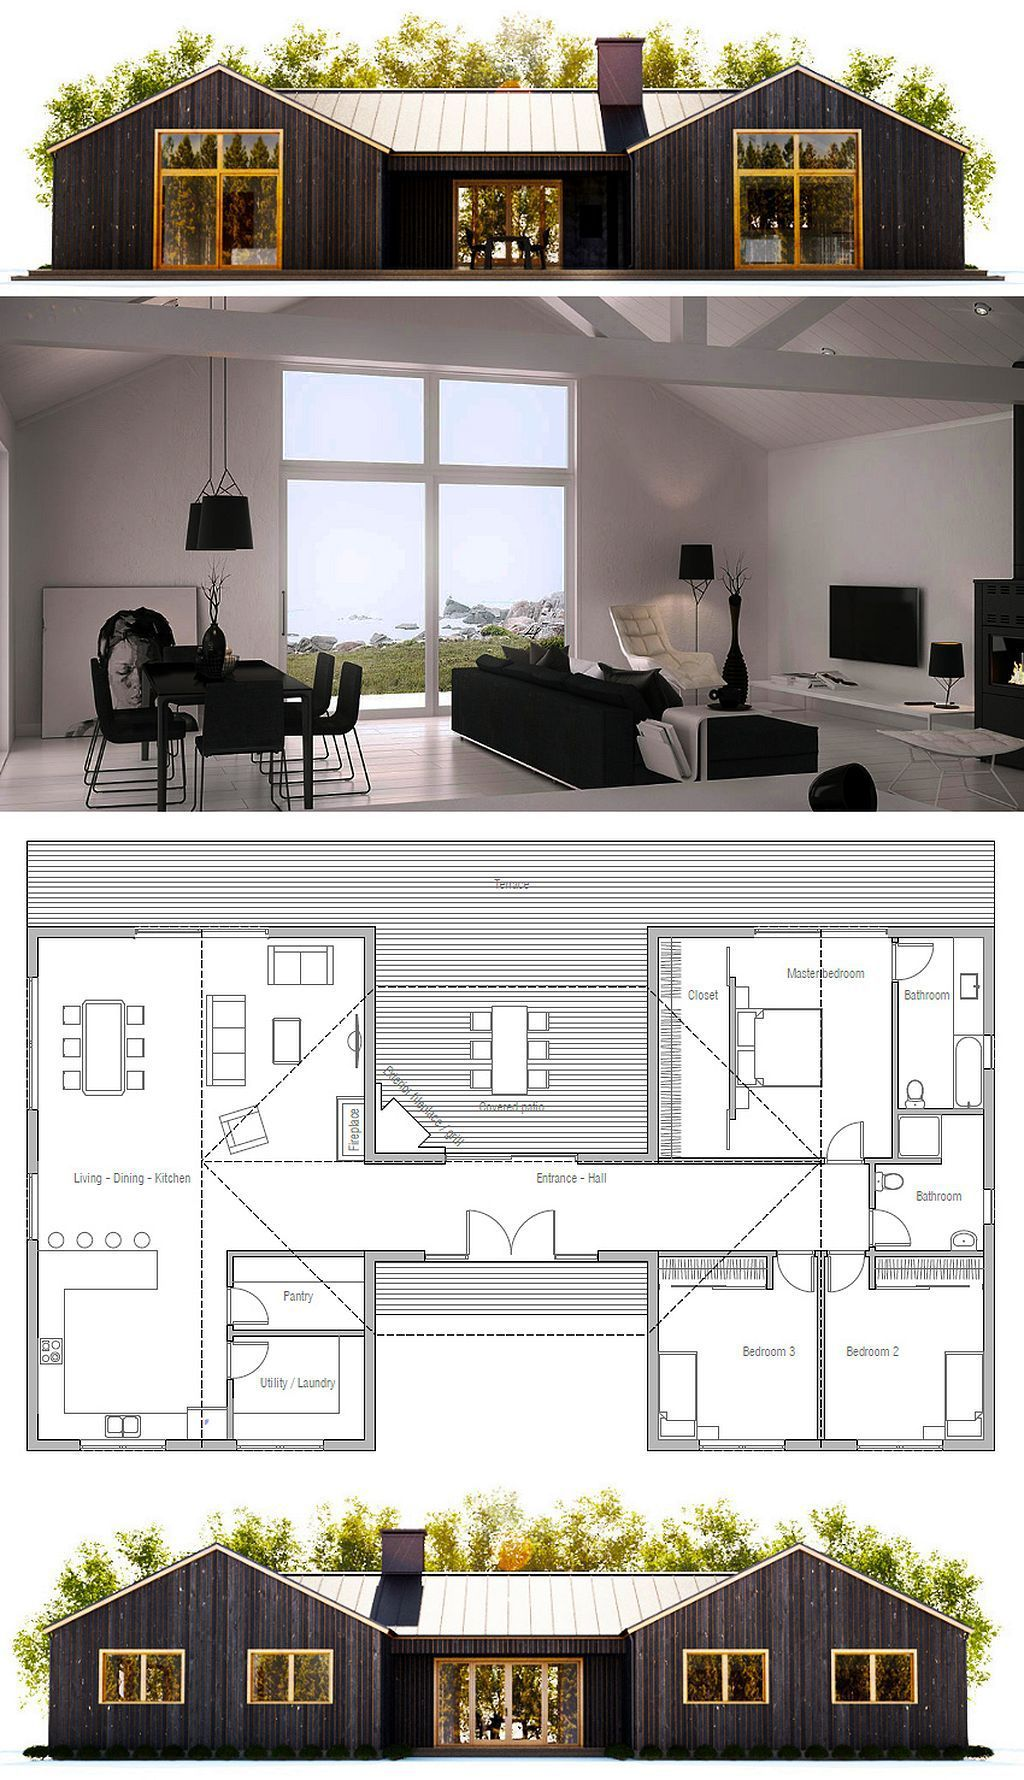 Shipping Container House Plans Ideas 13 | Architecture design ...